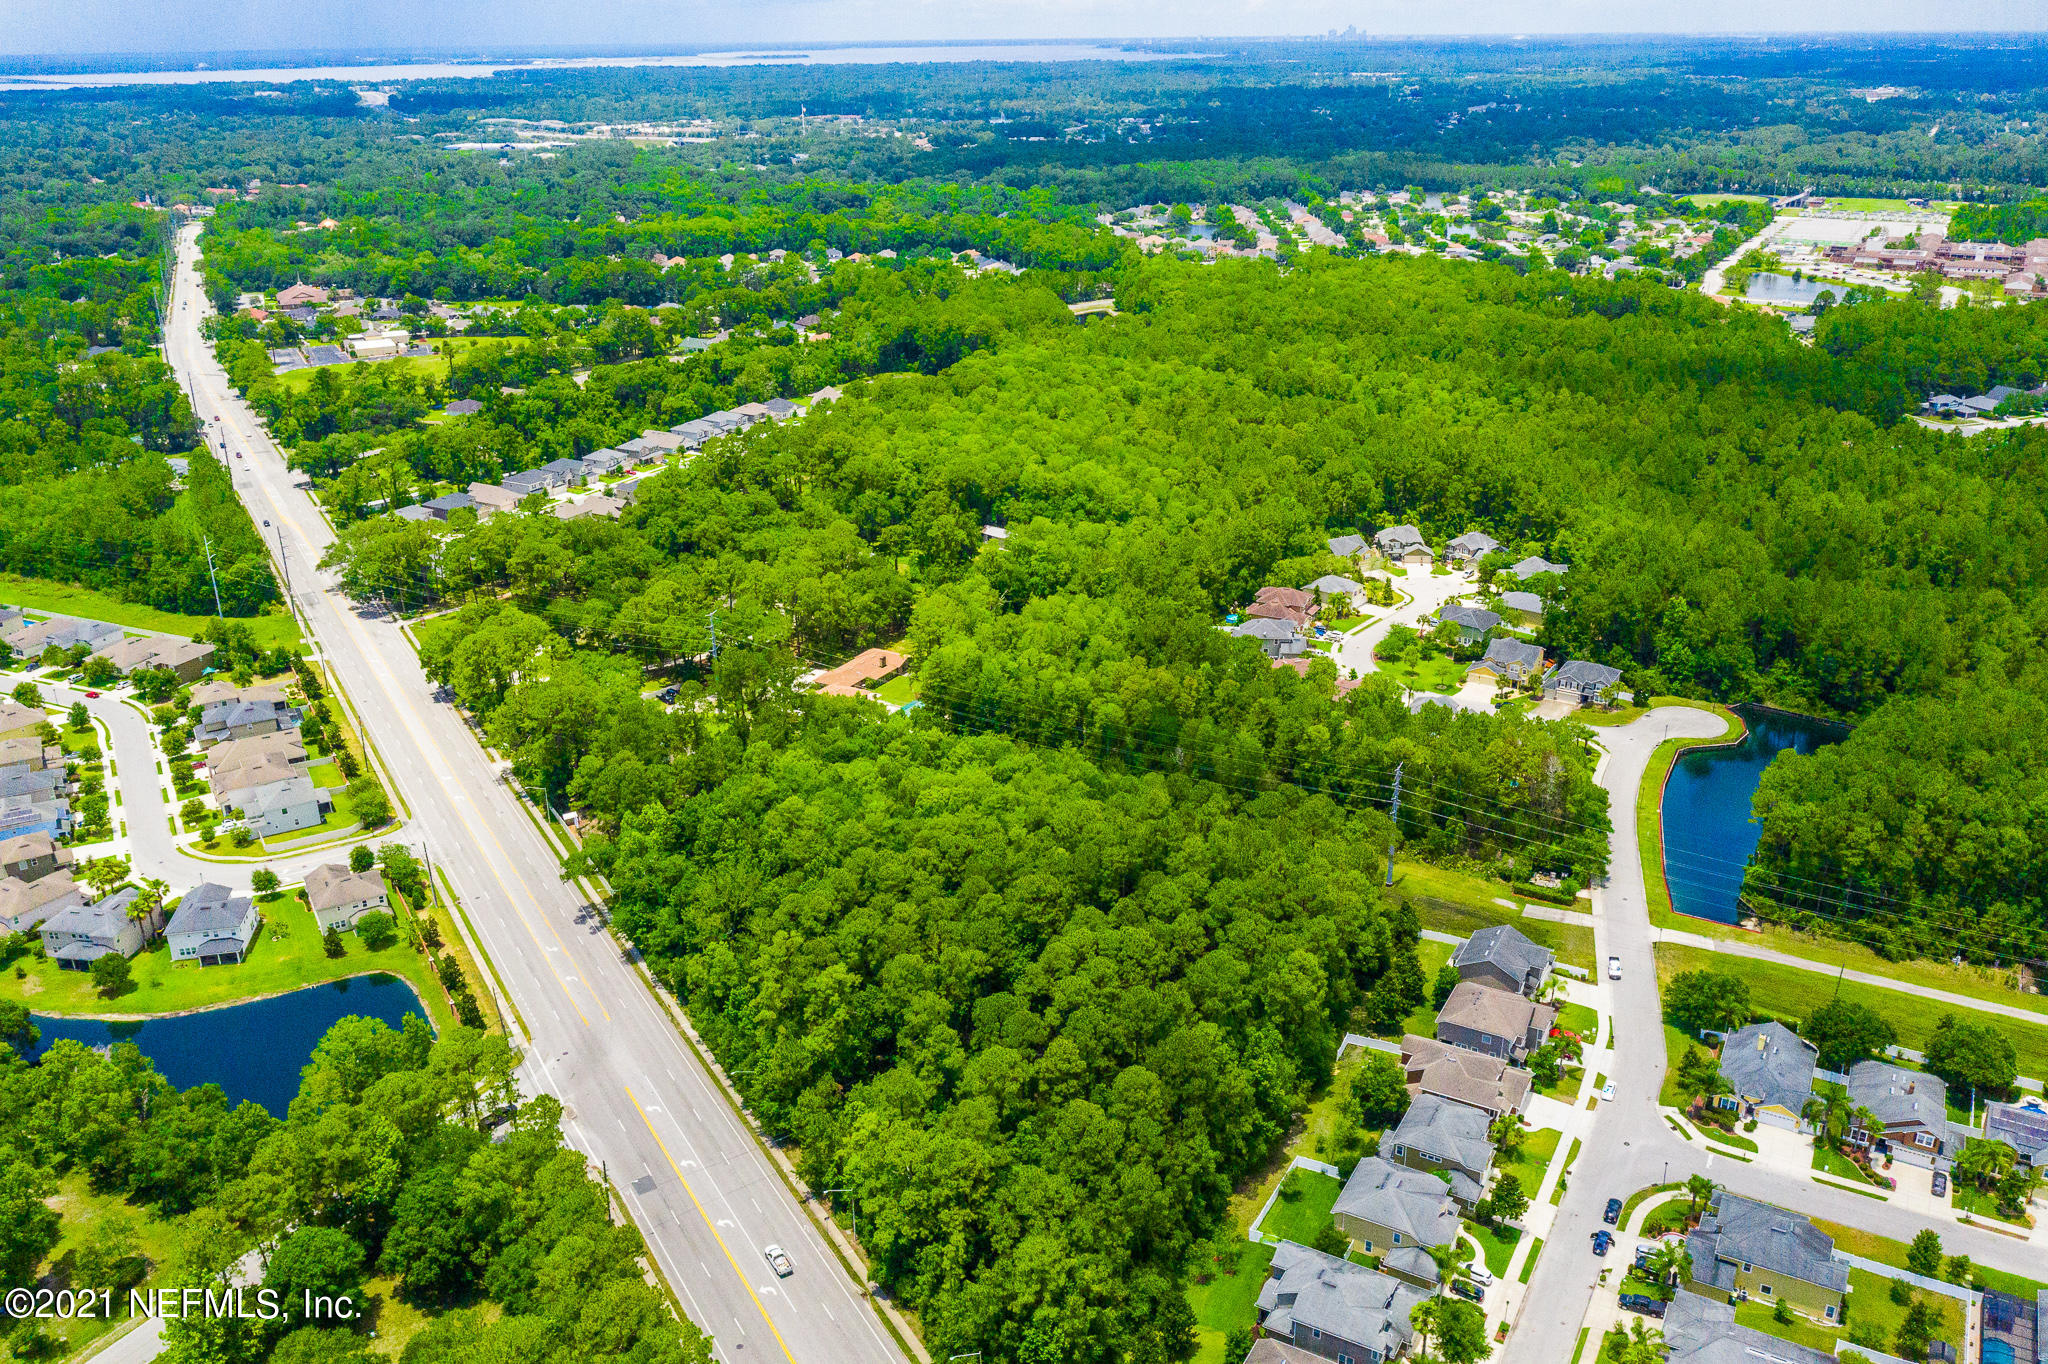 An outdoors person's Dream, or a Developer's diamond in the rough. Sale includes 2 properties 11999 Frenchie Ln and 12265 Old St Augustine Rd. Approximately 13+ acres with 2 ponds, located in the highly desirable Mandarin area off of Old St Augustine Rd. 11999 Frenchie has a 5 bedroom 3.5 bathroom home, with a detached office/entertaining bonus structure complete with a full outdoor wet bar. Relax the day's stress away in the spa inspired master bathroom as you soak in the deep jetted tub or get energized for your day in the walk-in custom shower, complete with every fashion lover's dream closet a few steps away. 12265 Old St Augustine Rd has a 1 bedroom 1 bathroom home, remodeled interior, that would be perfect for a mother in law suite, or rental income producing property. If you If you enjoy nature look no further, this is the property for you! If you are looking to develop the land into the next up and coming neighborhood then you have found the gem you've been searching for!